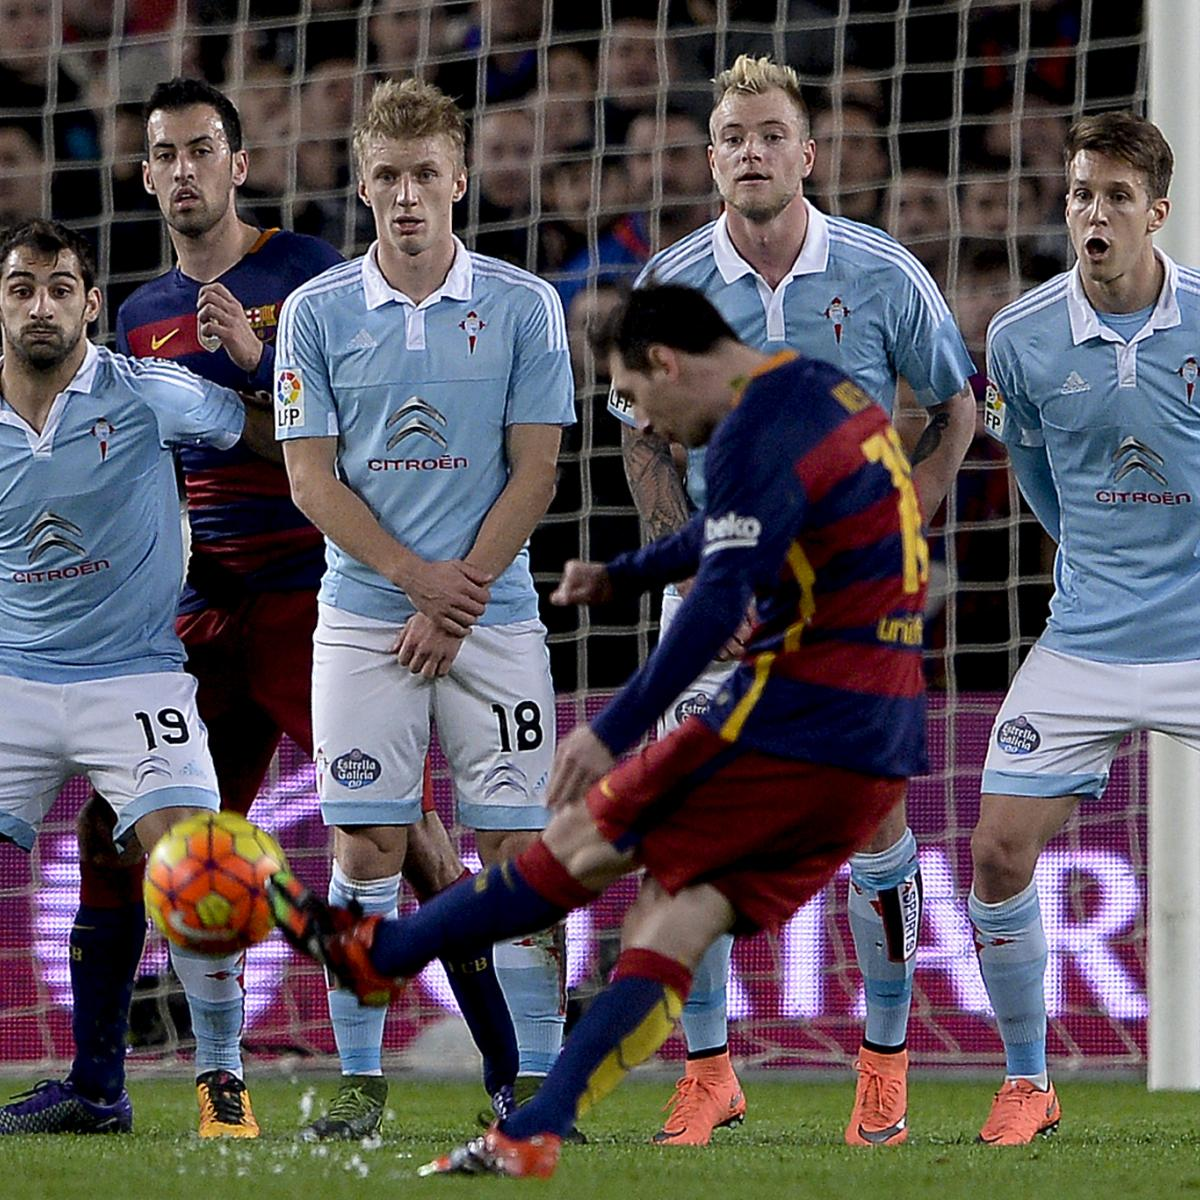 Barcelona Vs Celta Vigo In Youtube: Barcelona Vs. Celta Vigo: Goals, Highlights From La Liga